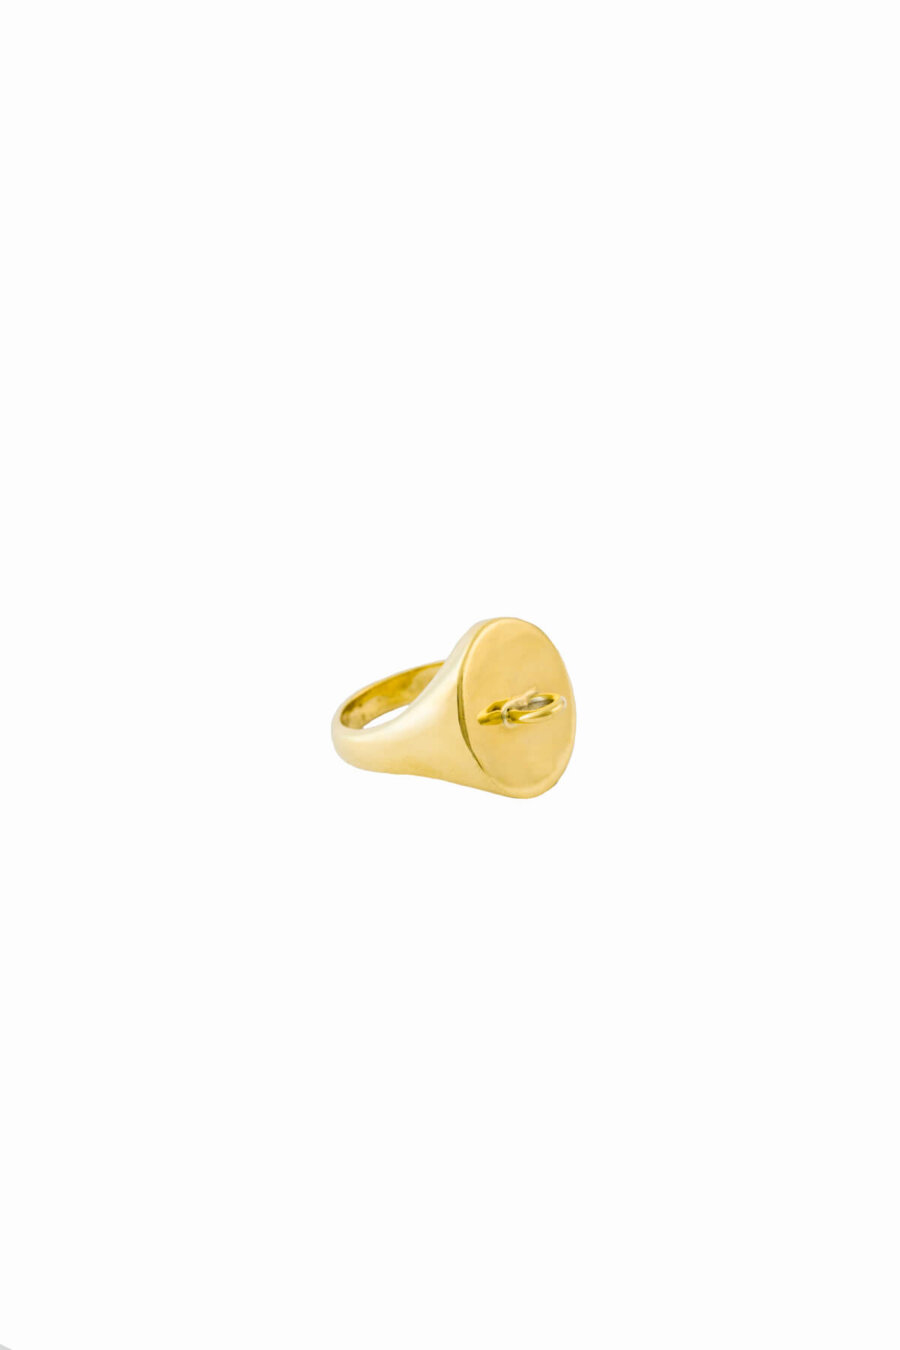 the-link-signet-ring-by-glenda-lopez-lateral